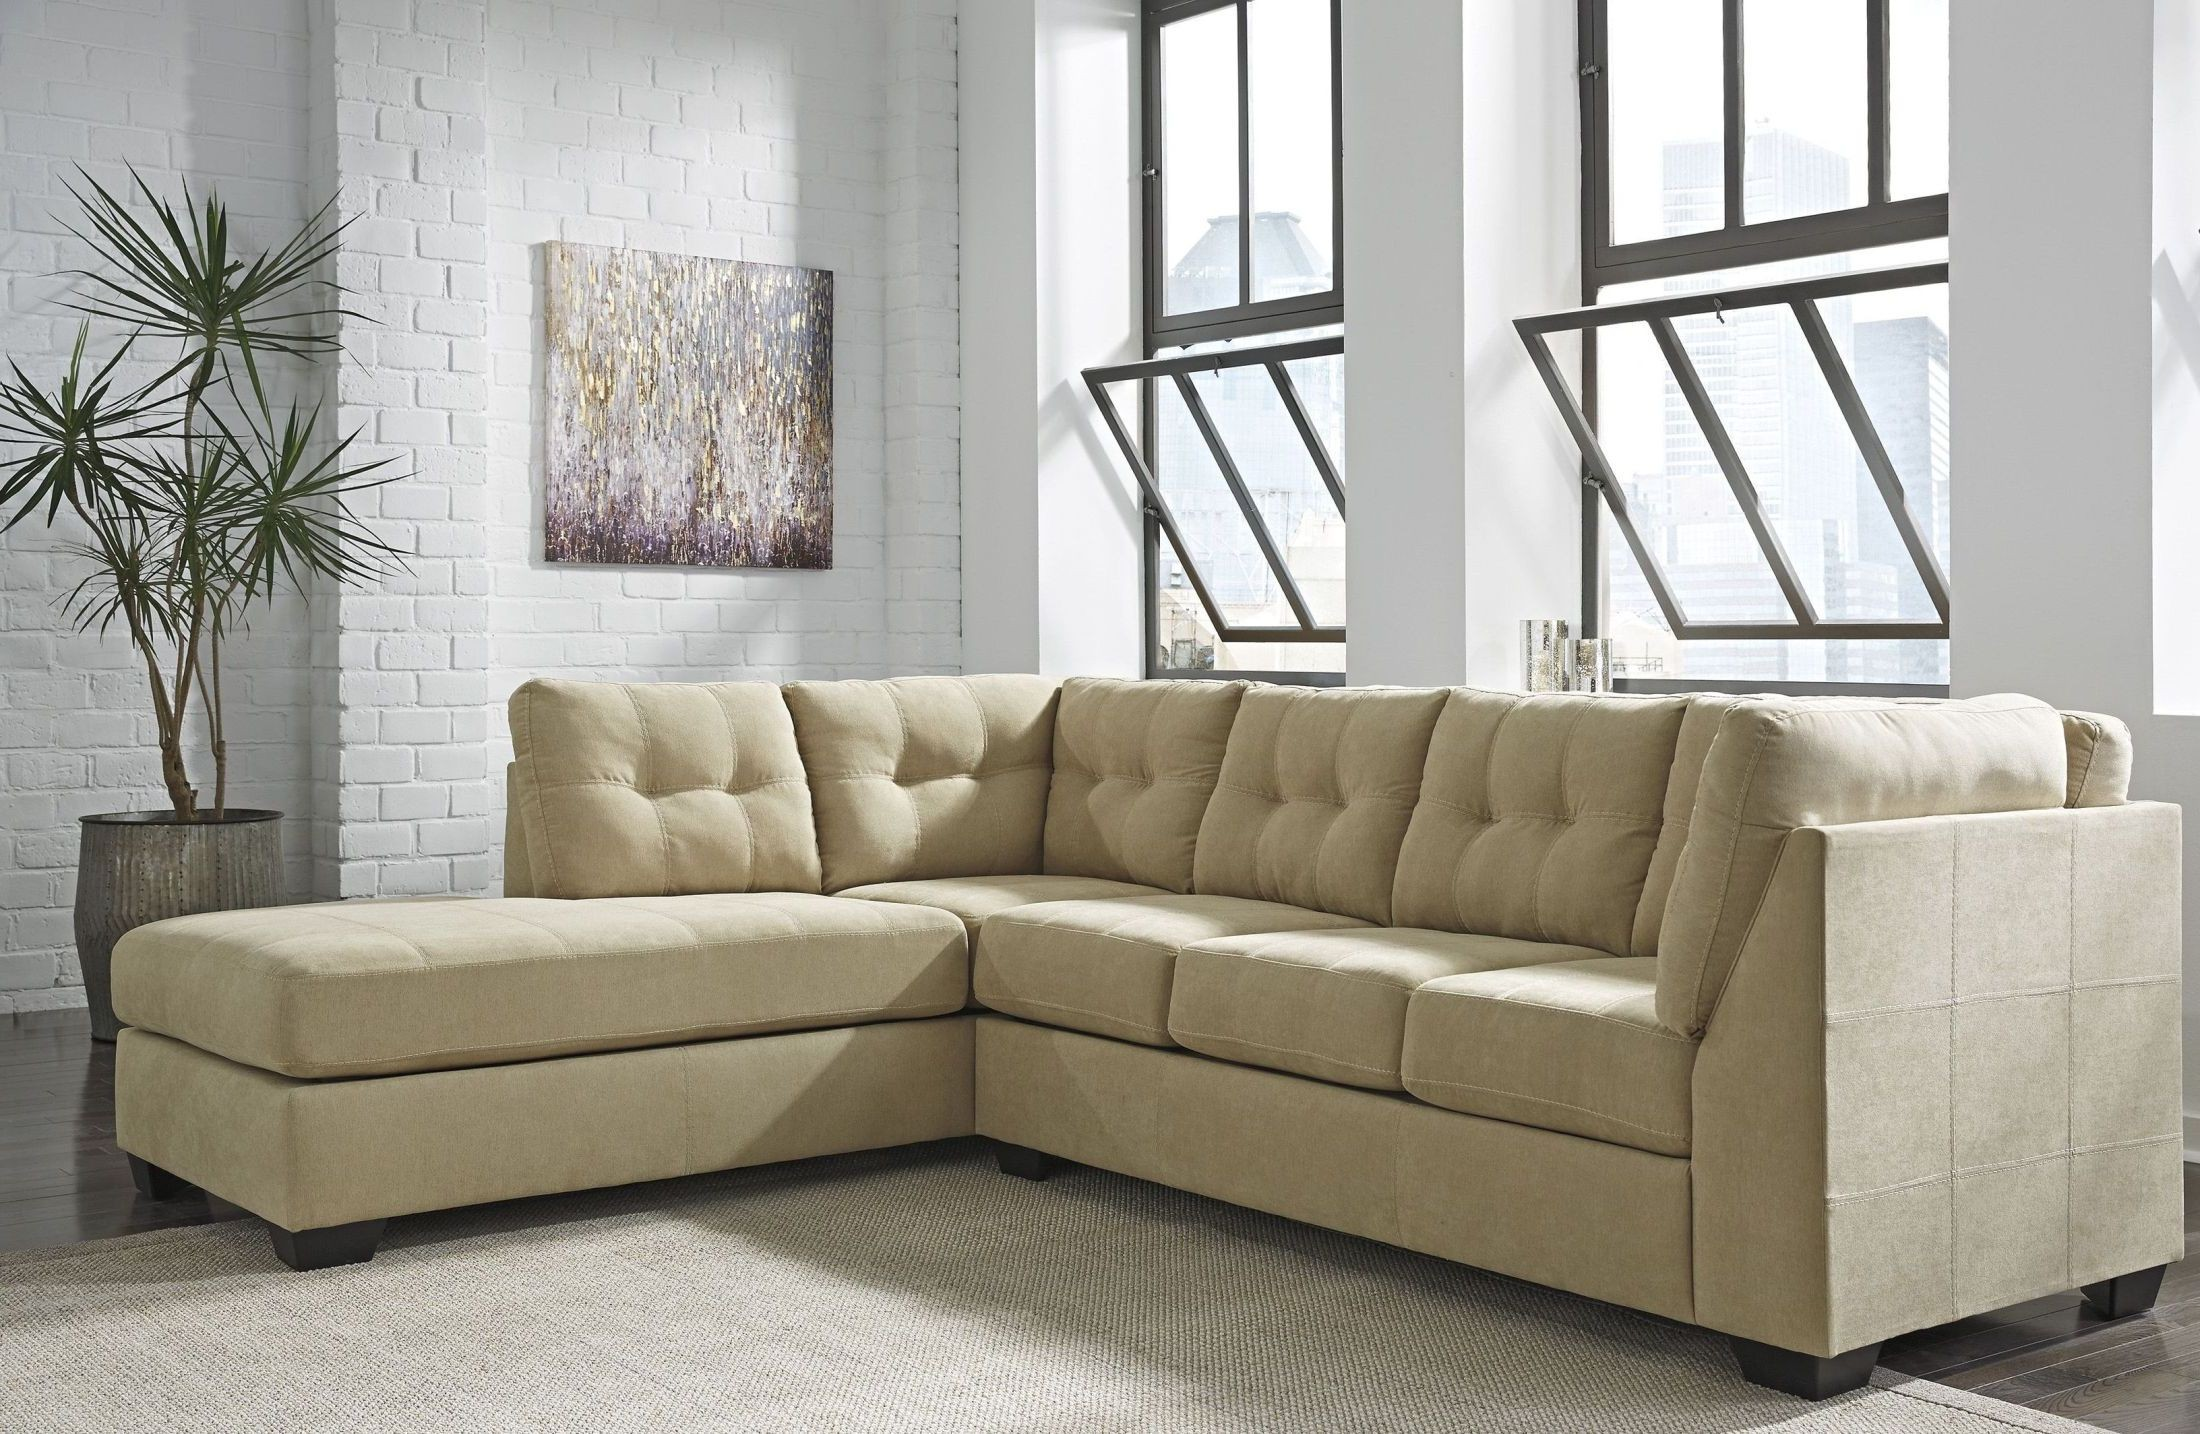 Maier Cocoa LAF Sectional from Ashley